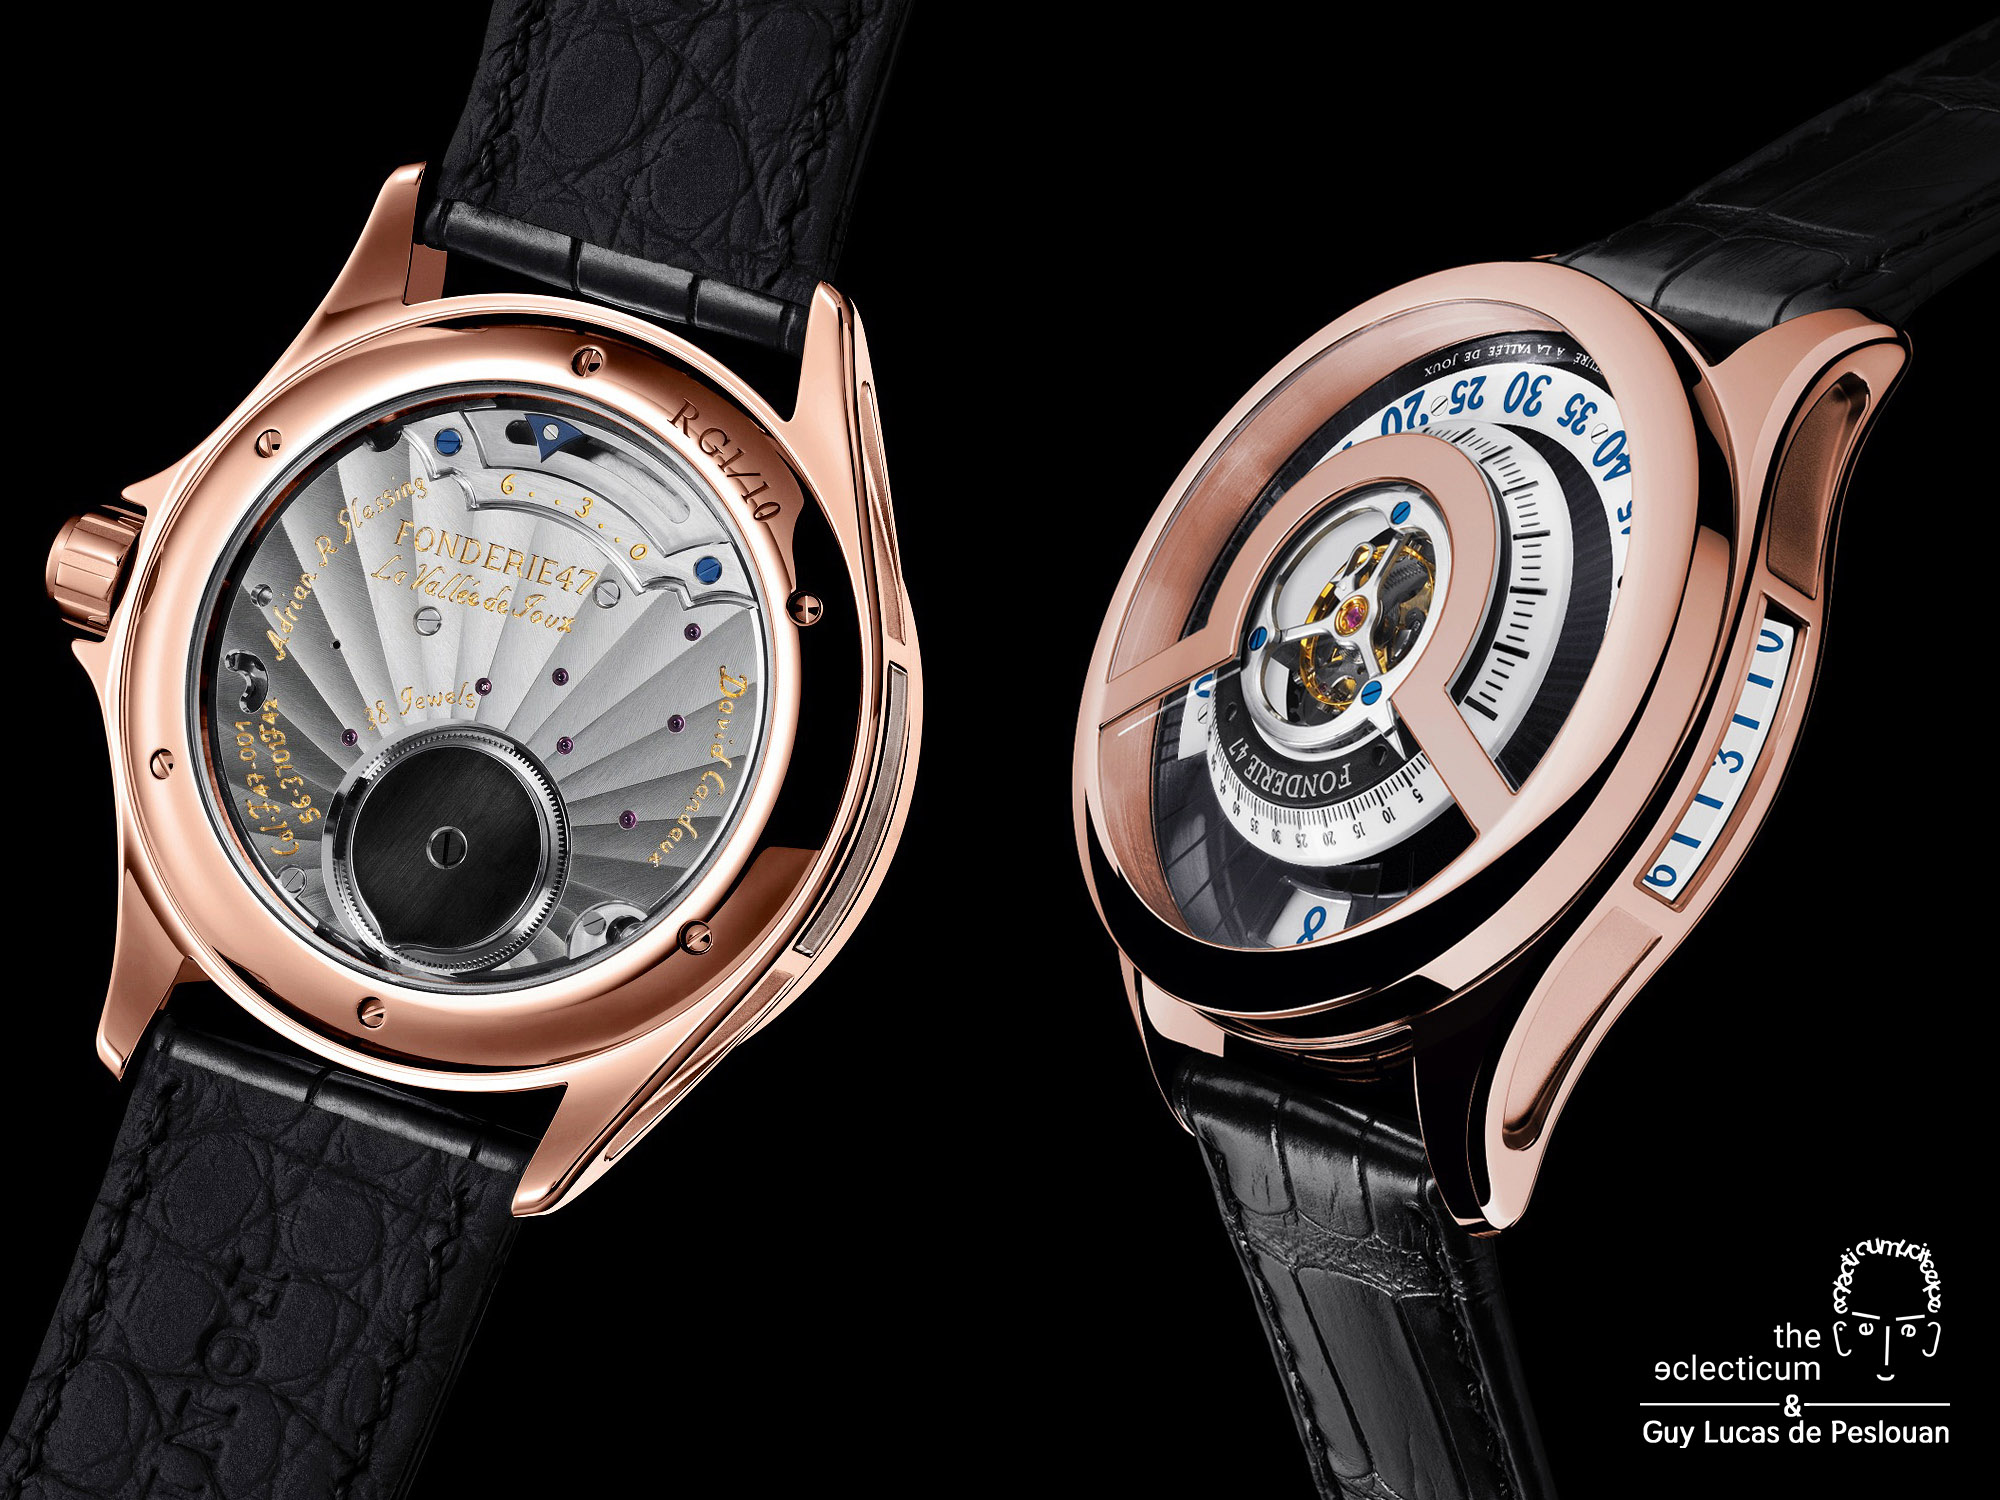 Fonderie 47 Inversion Principle Tourbillon David Candaux central flying tourbillon